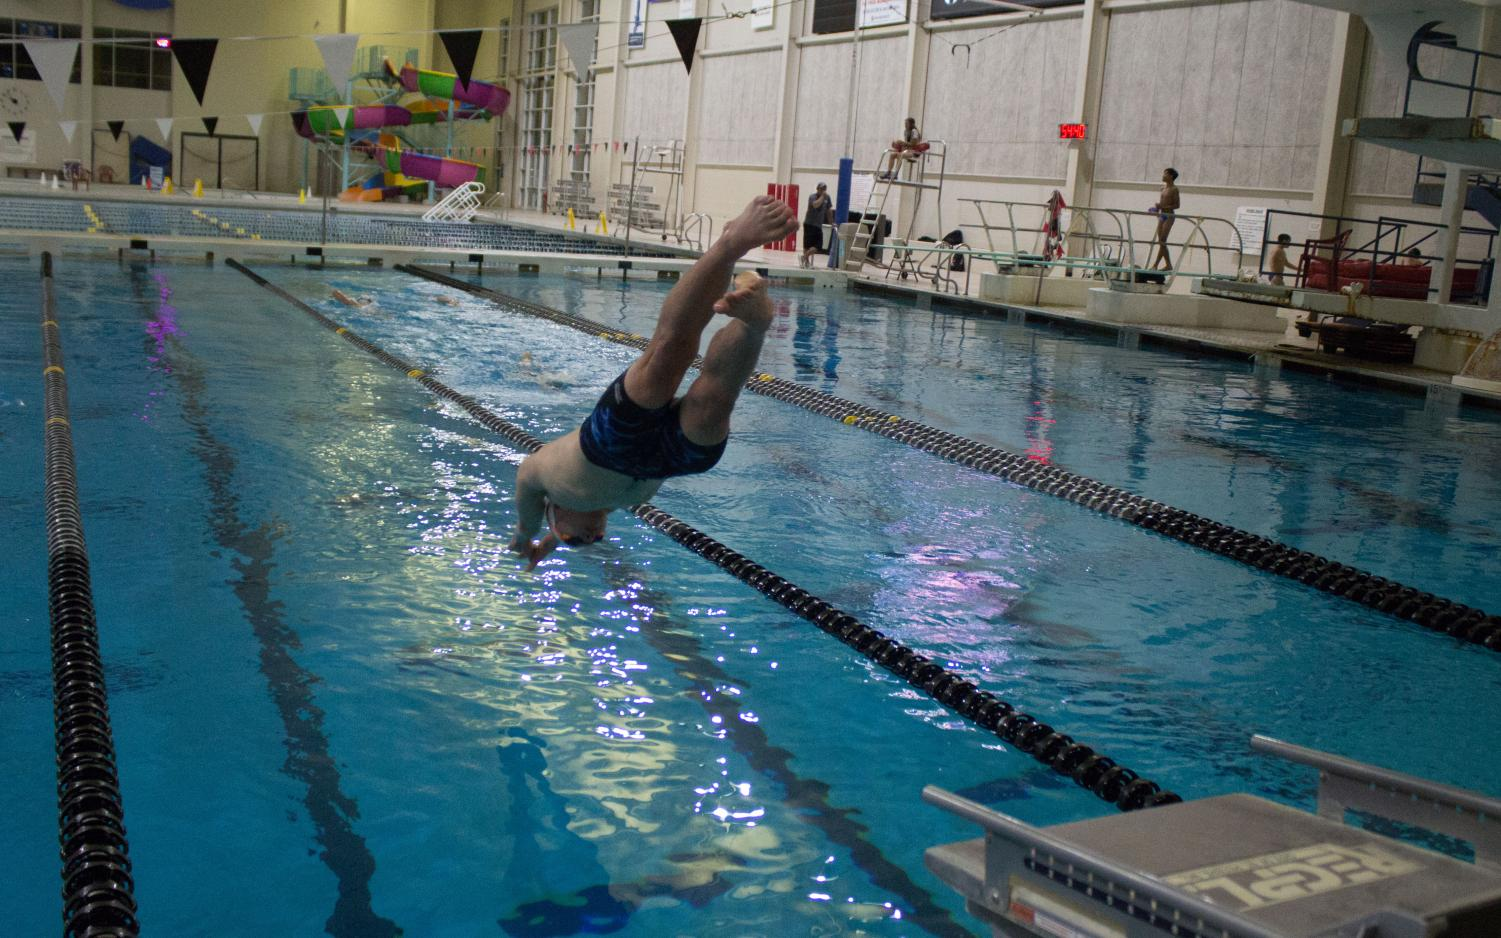 A member of the team rives into the water